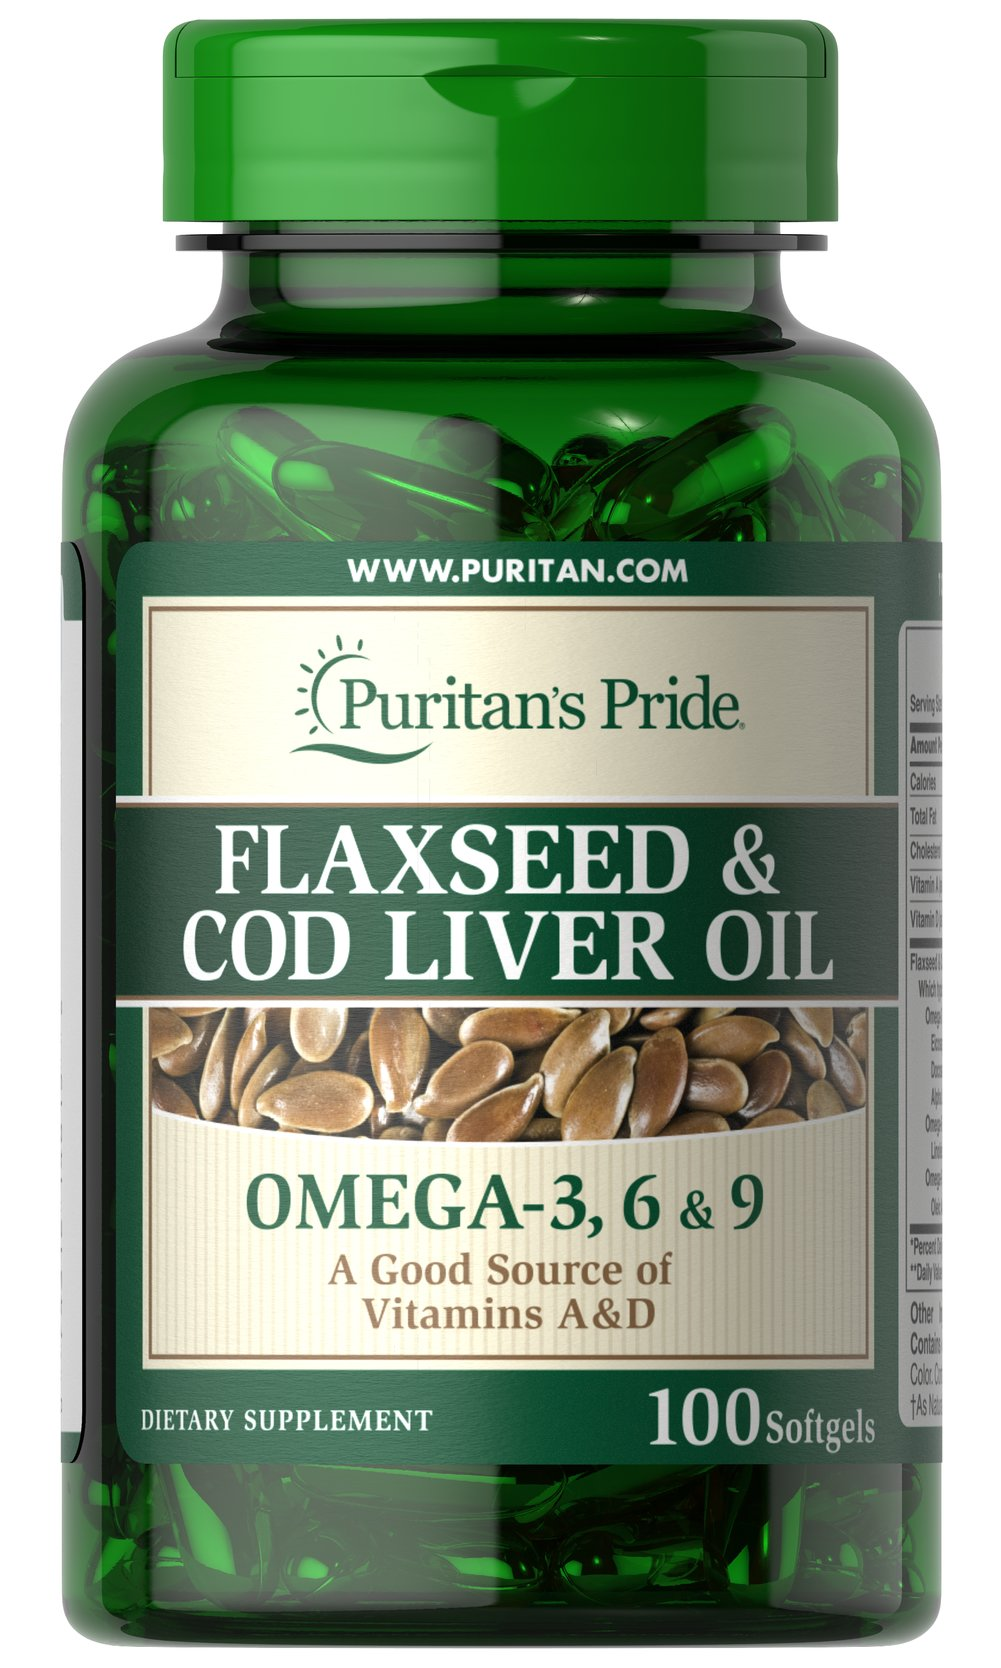 Flaxseed & Cod Liver Oil 1000 mg Omega 3, 6 & 9 <p>Both <strong>flaxseed and cod liver oil</strong> are rich in essential <em>fatty acids</em>, which may play an important role in the proper functioning of the cardiovascular system.  Each softgel provides (500 mg) of cold-pressed linseed oil, plus enough cod liver oil to supply (1250 I.U.) of Vitamin A and (125 I.U.) of Vitamin D.</p> 100 Softgels 1000 mg $14.39